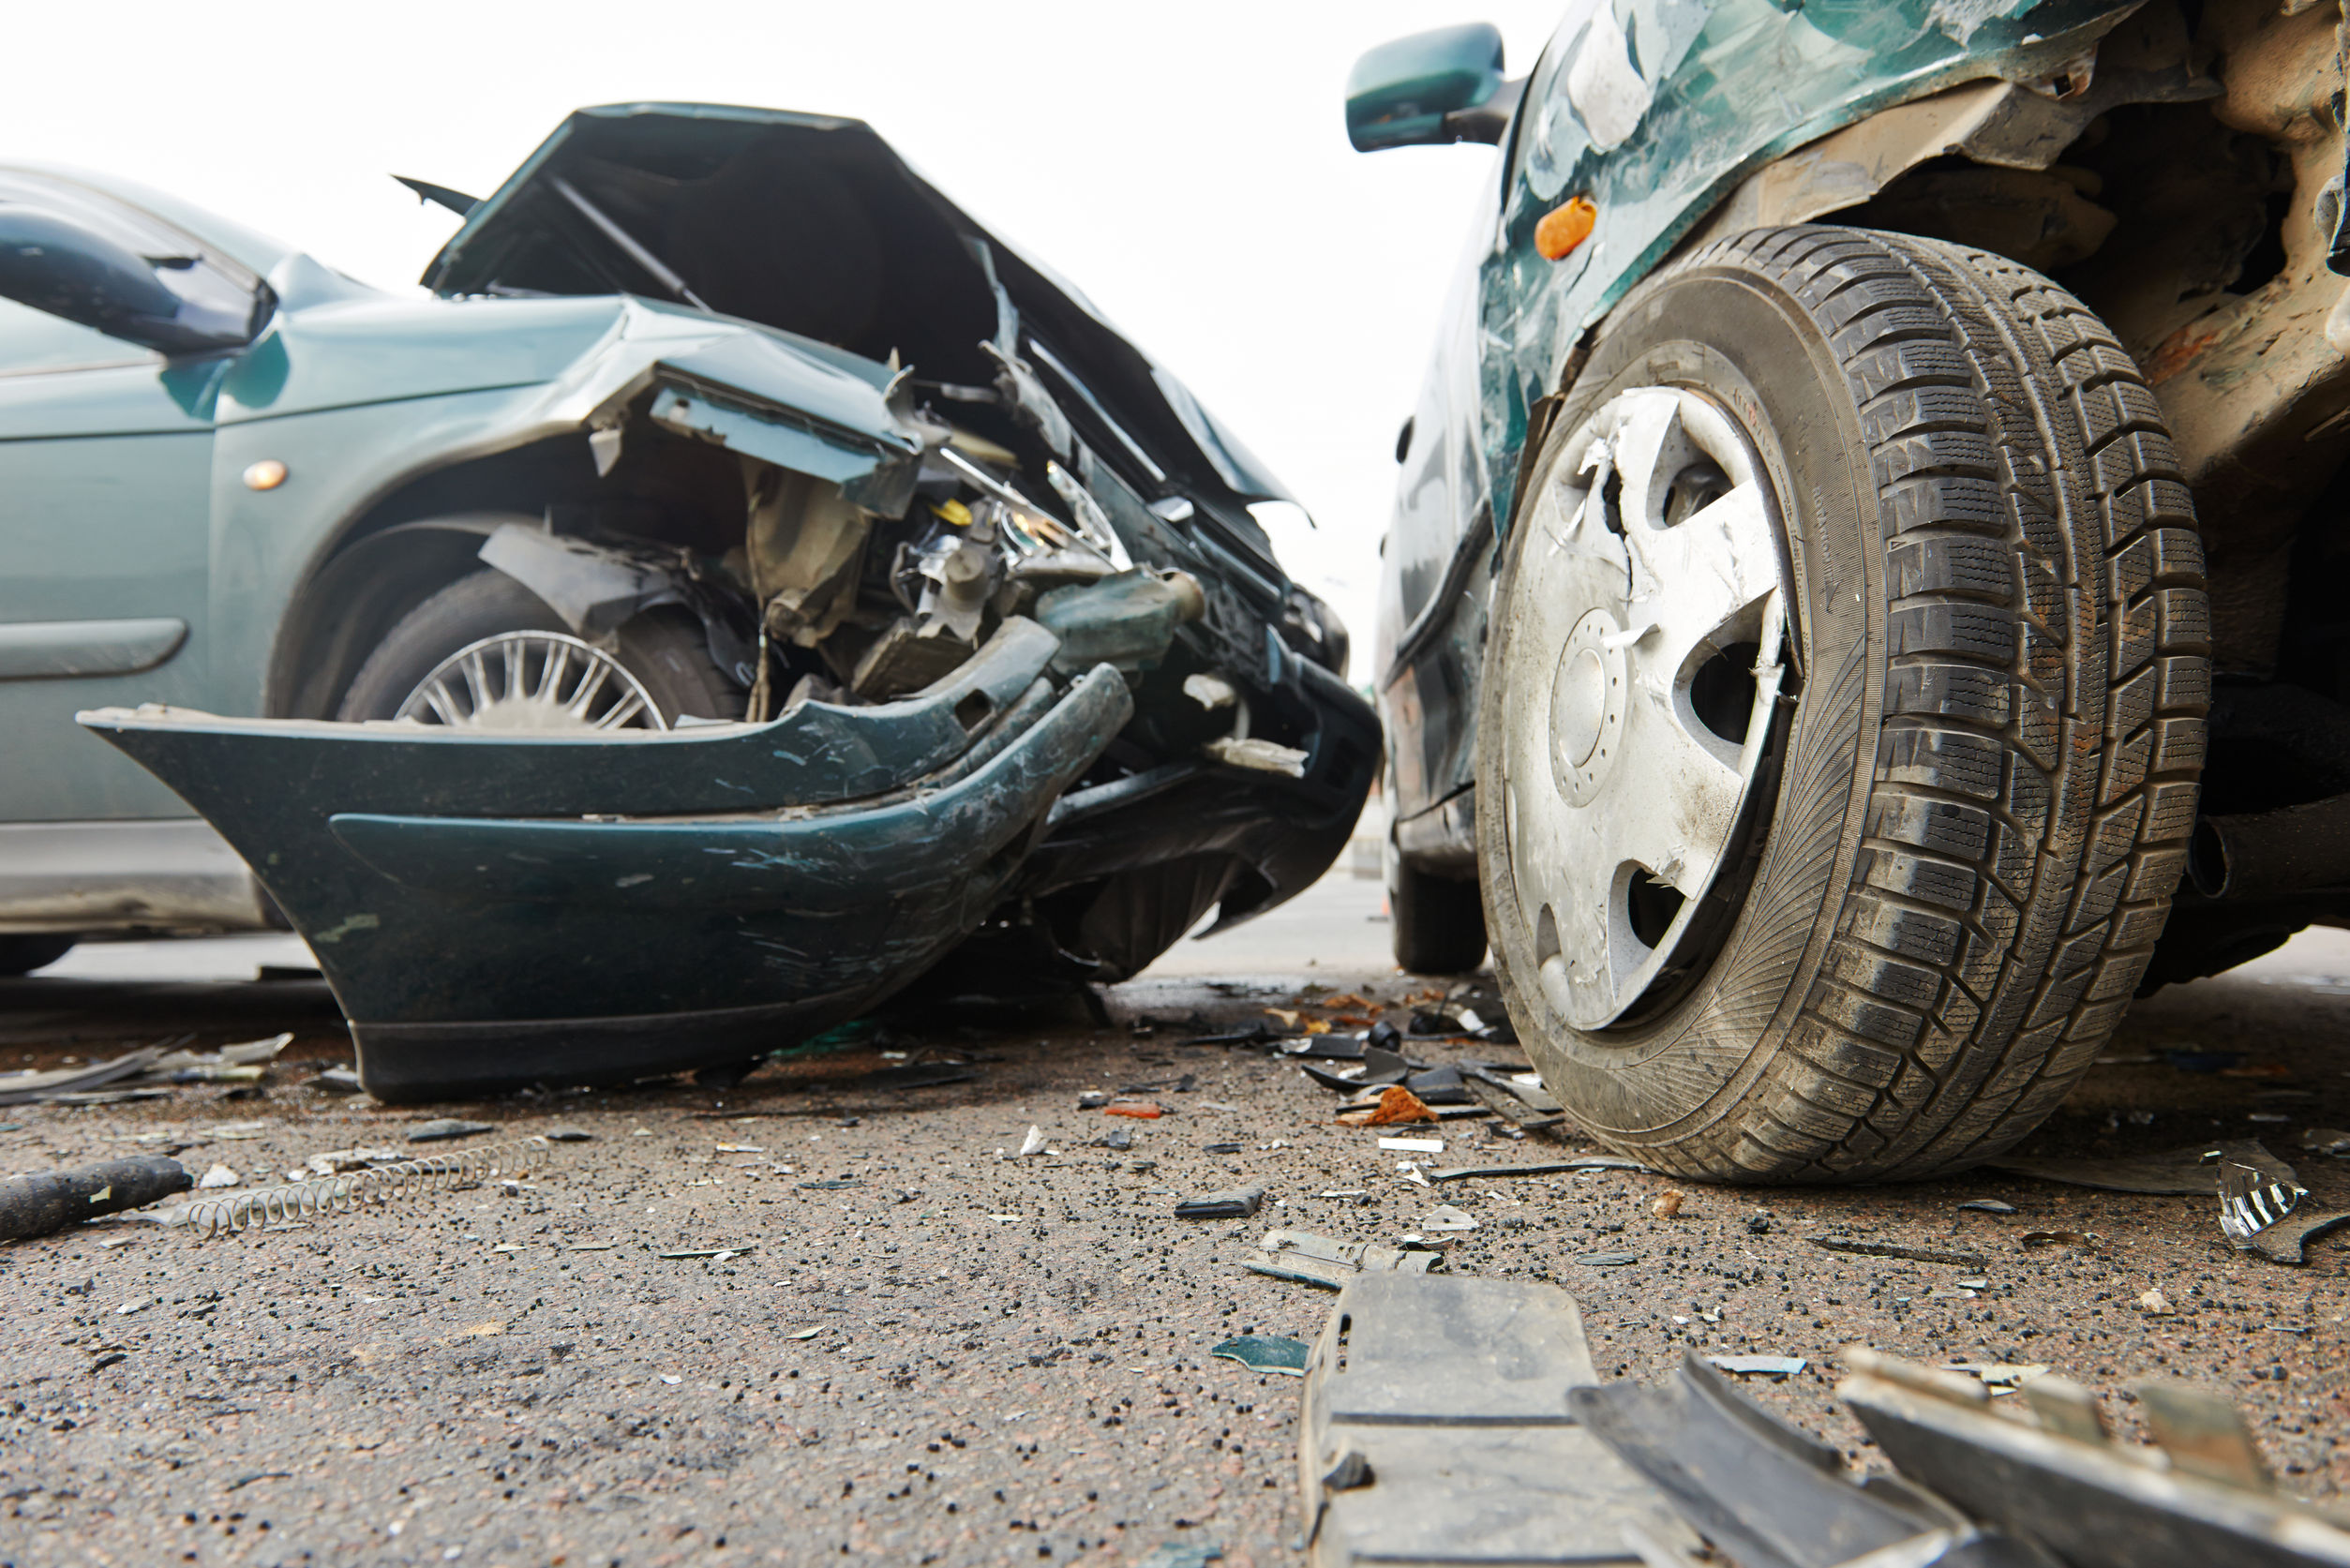 Close-up of two cars next to each other after a crash